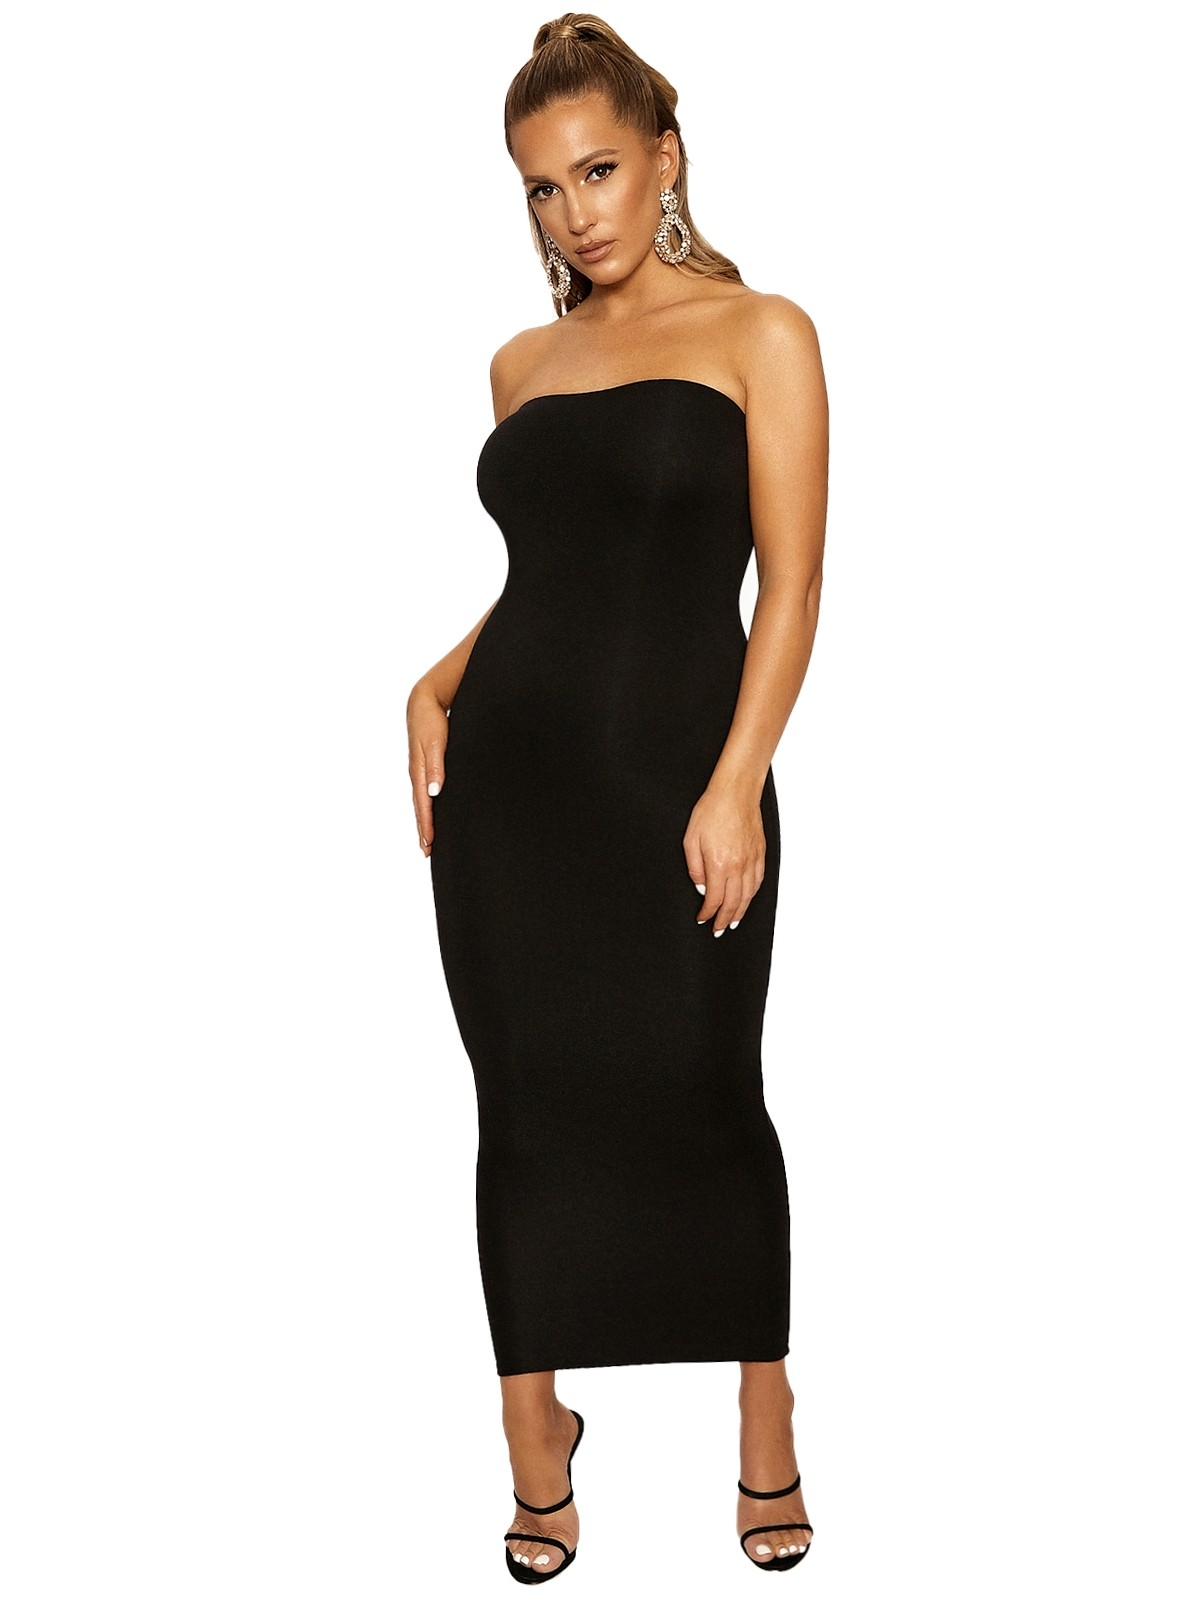 Meant Tu-Be Maxi by Naked Wardrobe, available on nakedwardrobe.com for $50 Kylie Jenner Dress SIMILAR PRODUCT